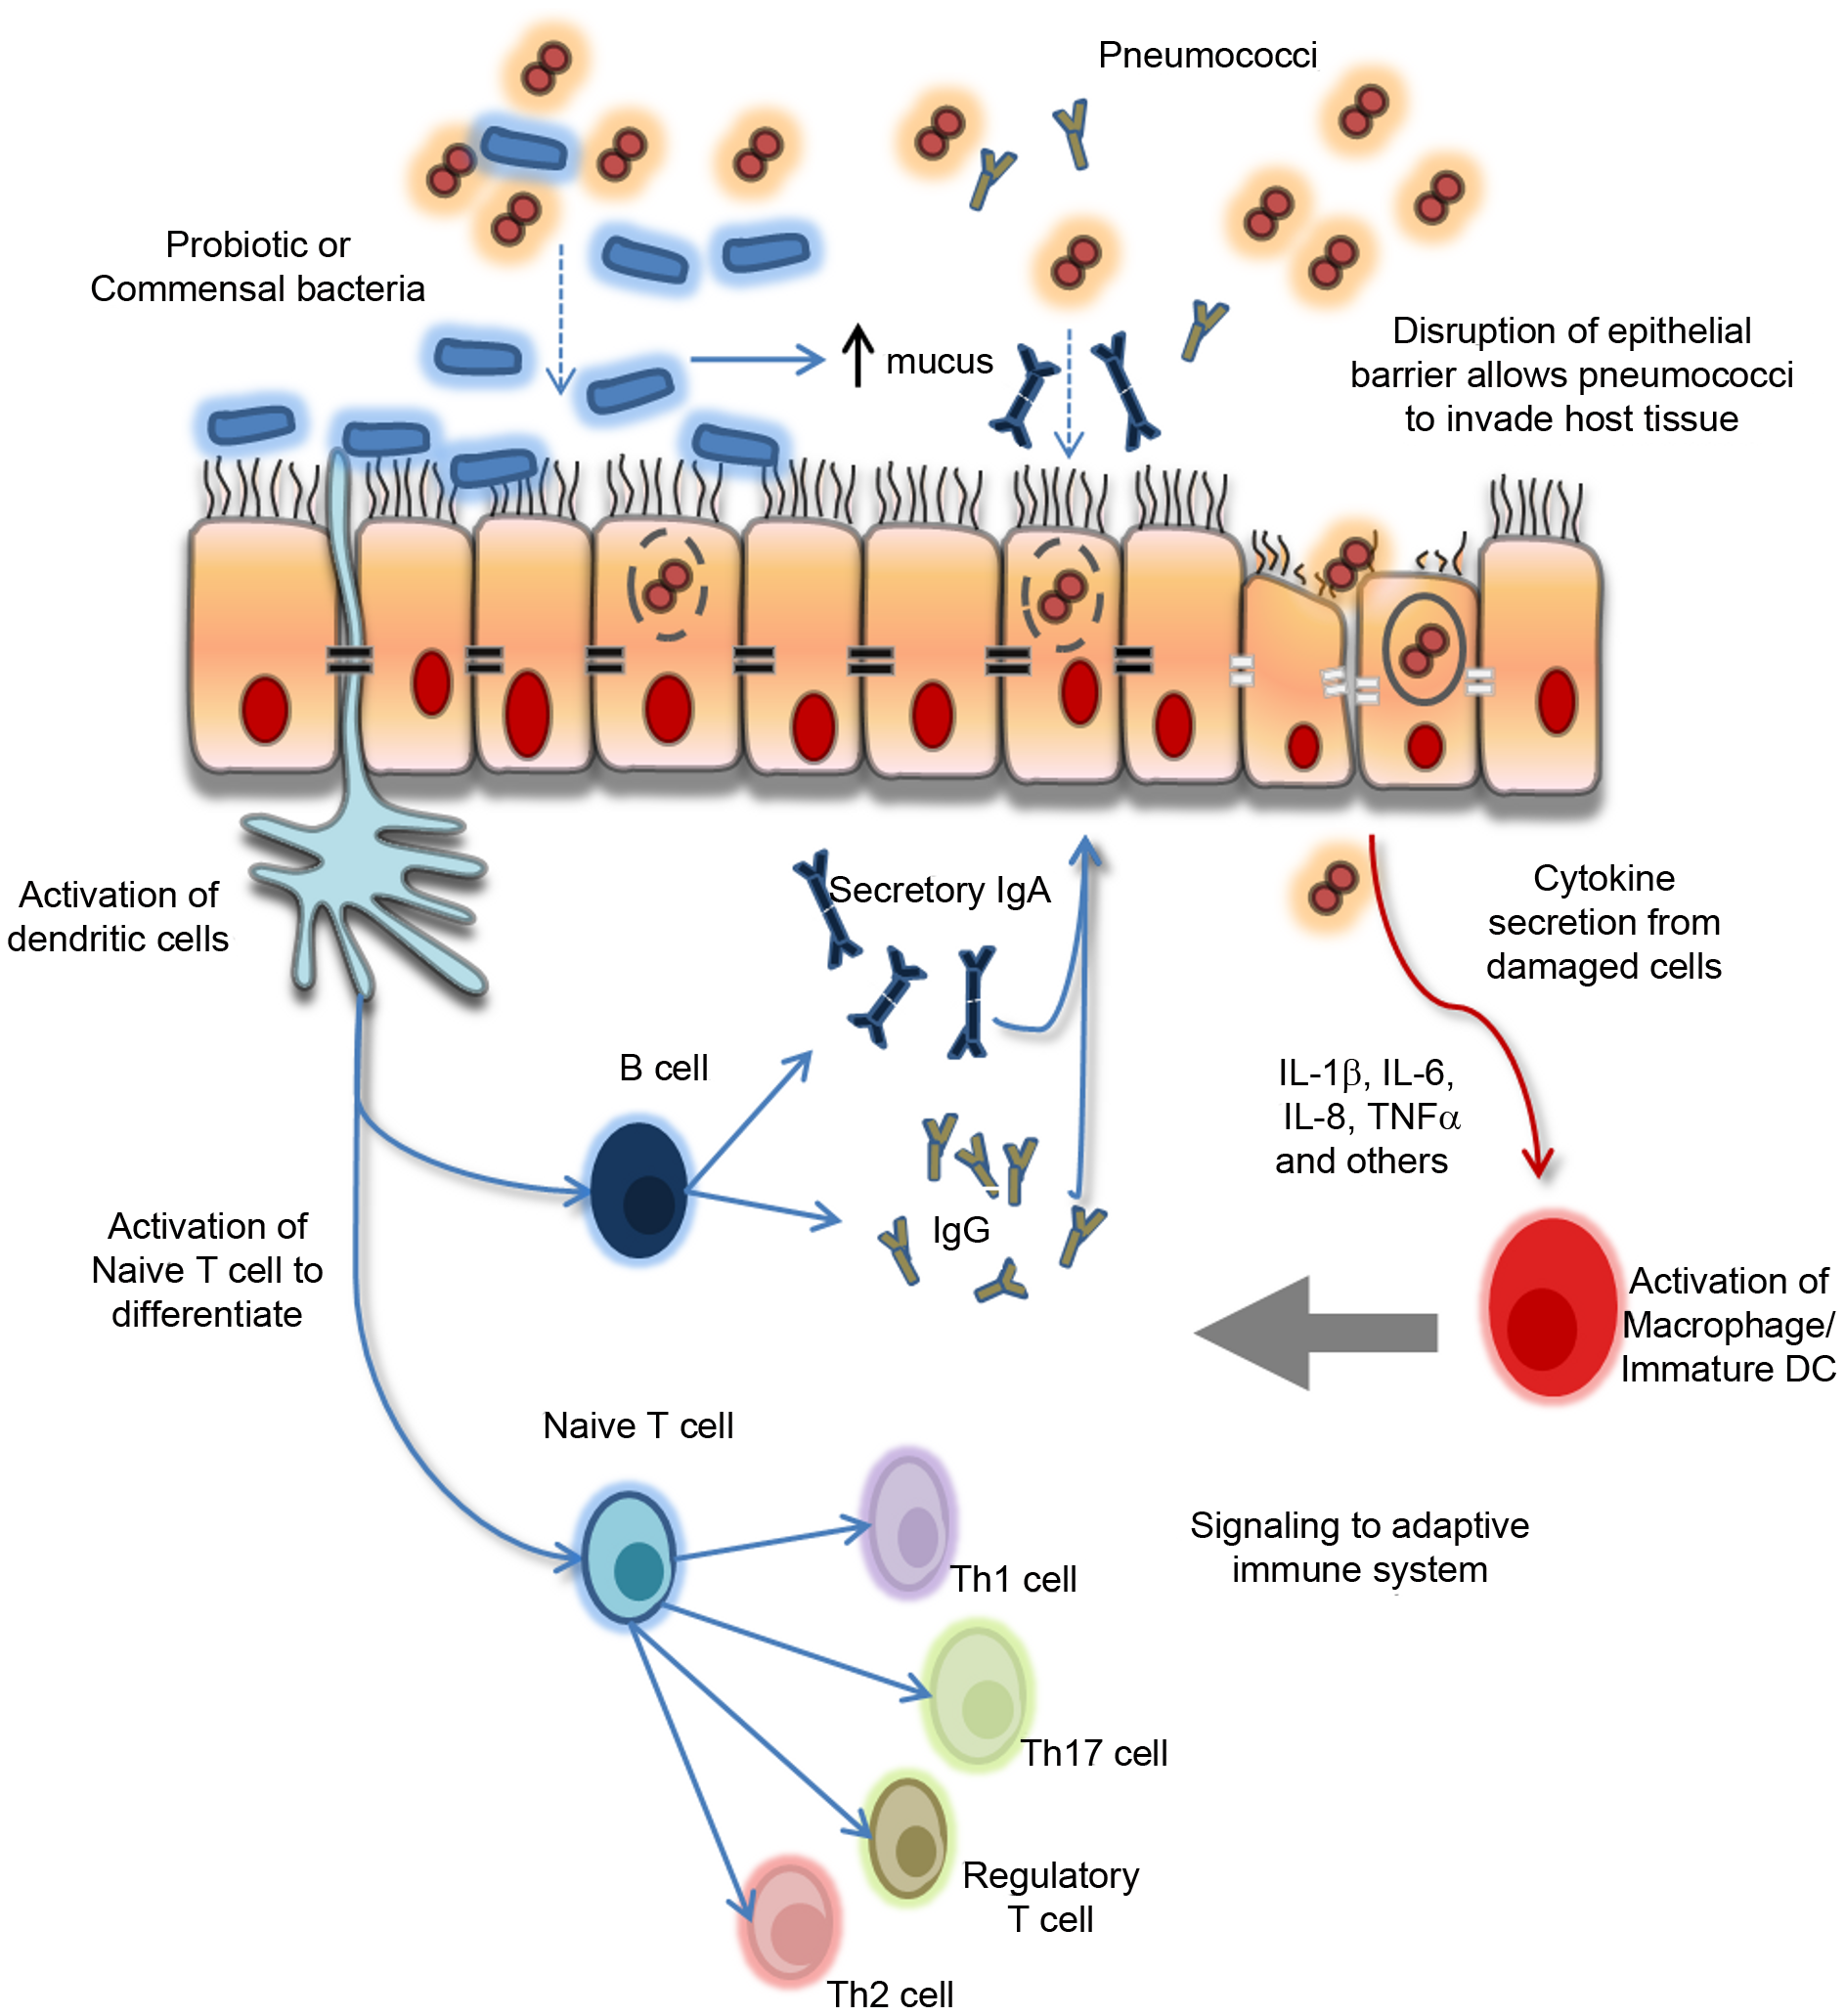 Paradigm for the proposed biological effects of probiotic bacteria in protection against pneumococcal infection.